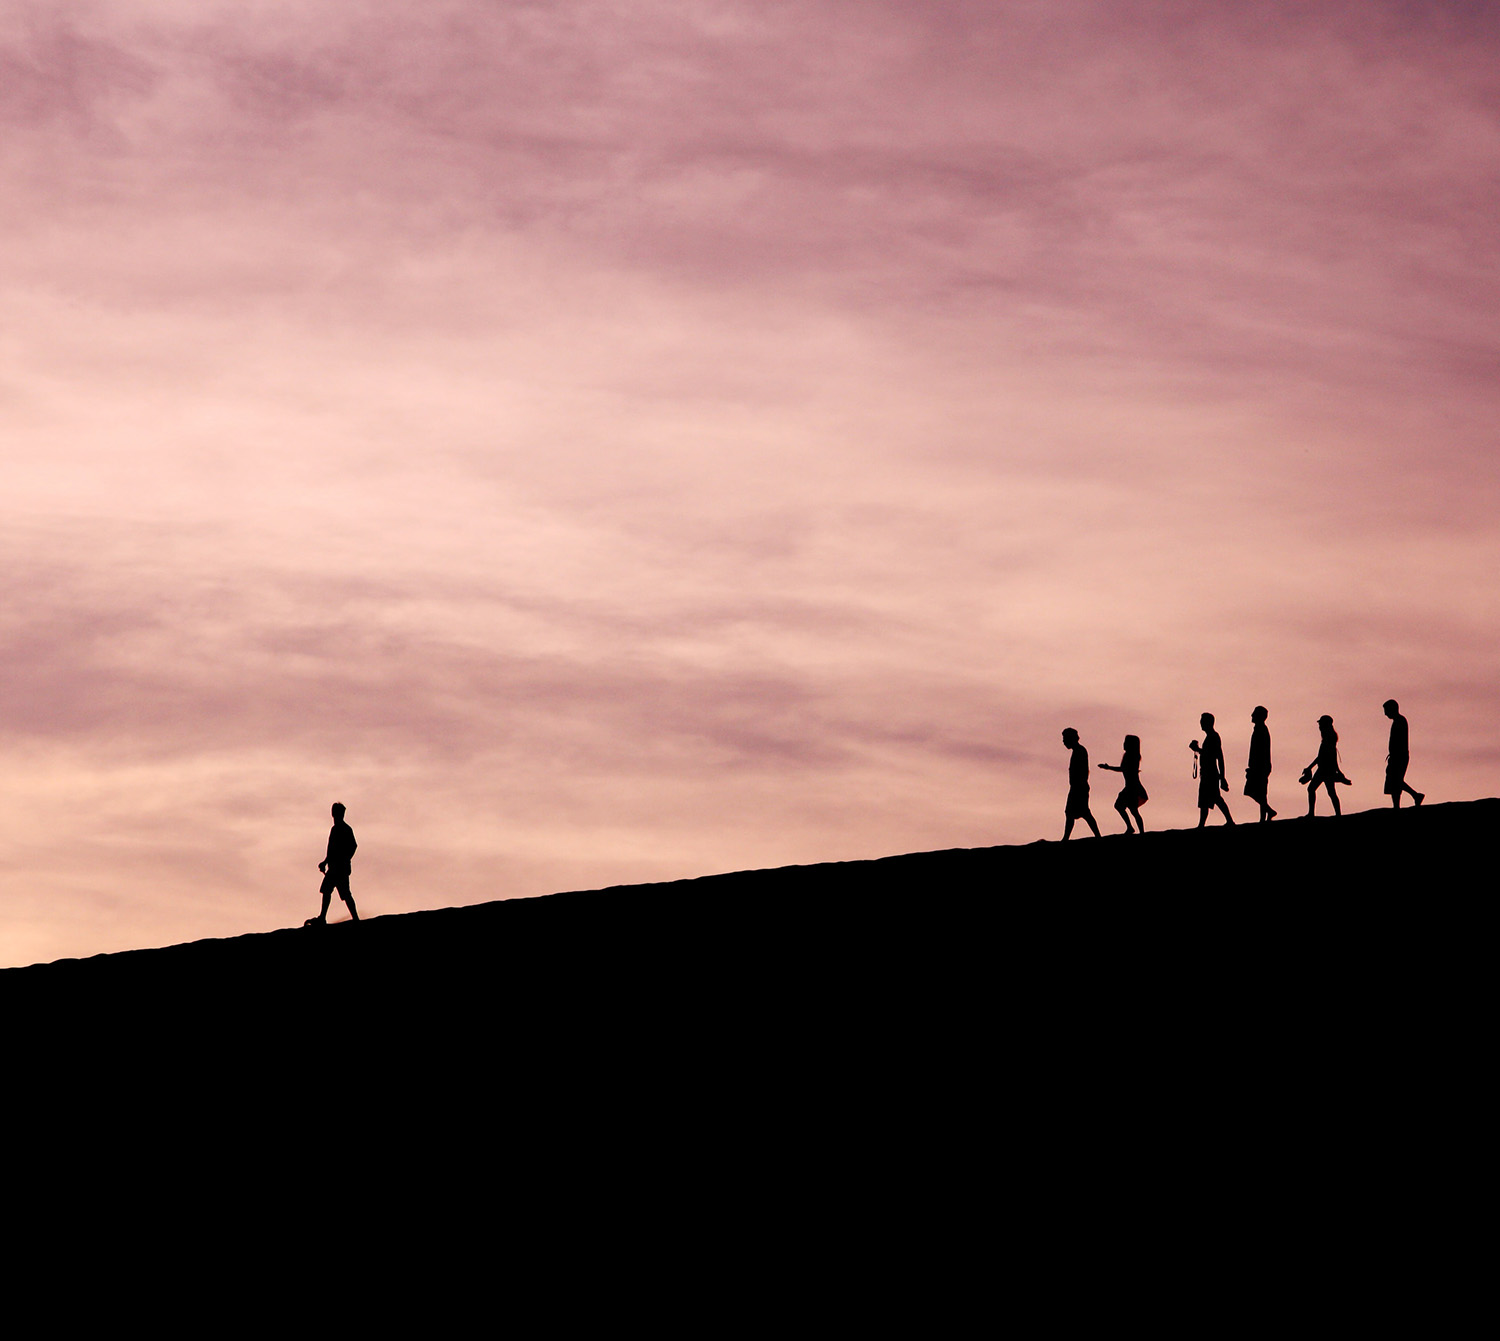 TOP 8 CHARACTERISTICS OF GOOD LEADERSHIP